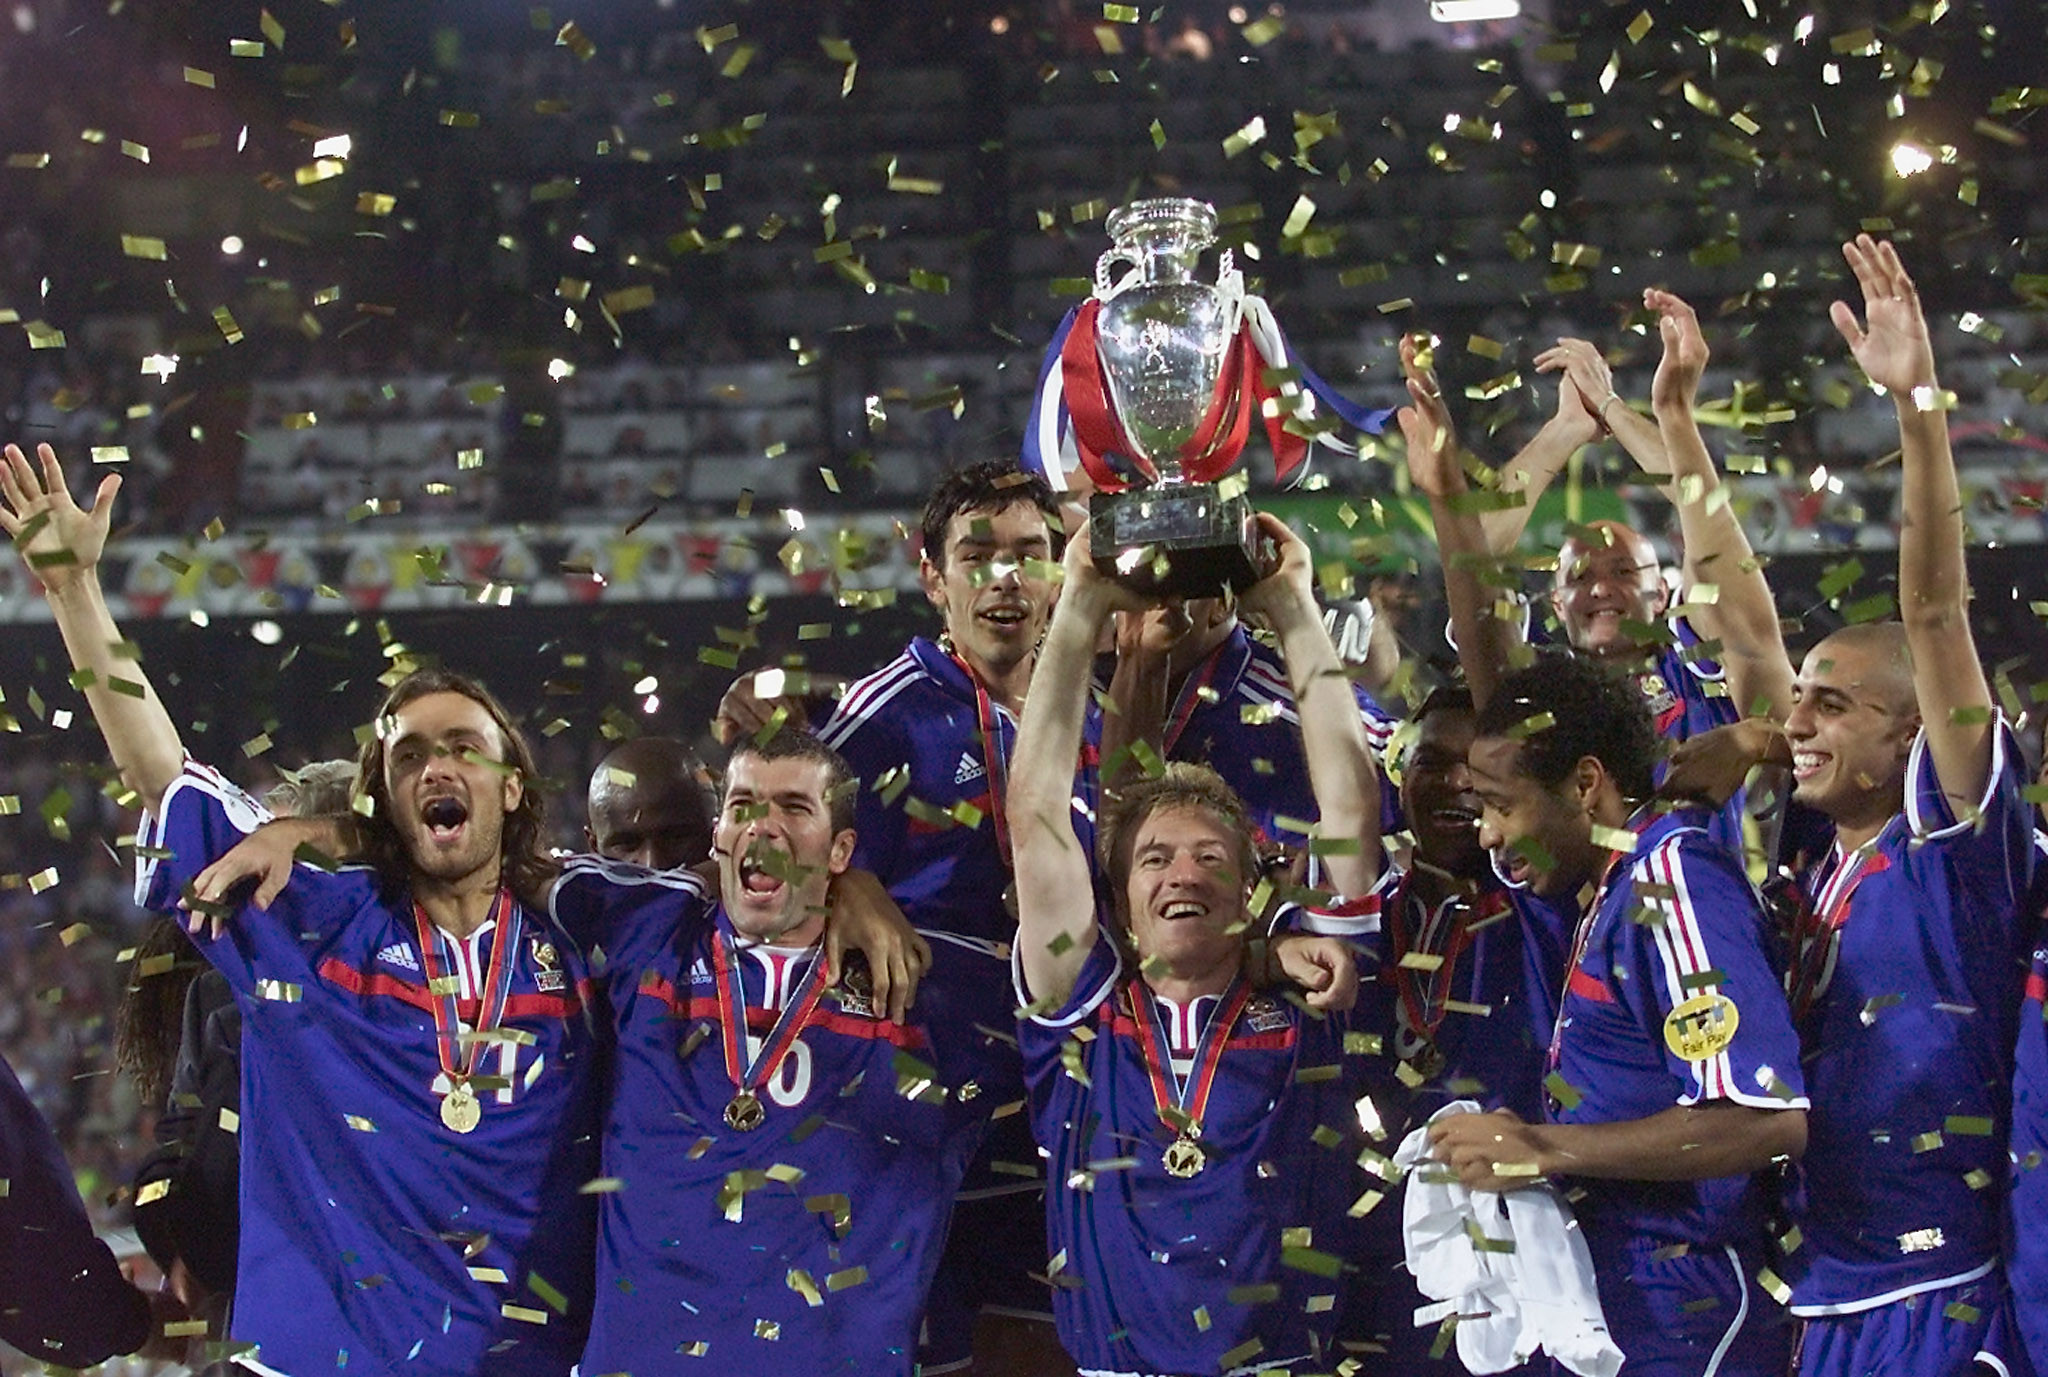 Didier Deschamps, holding the trophy, won the European Championship as a player 21 years ago ©Getty Images